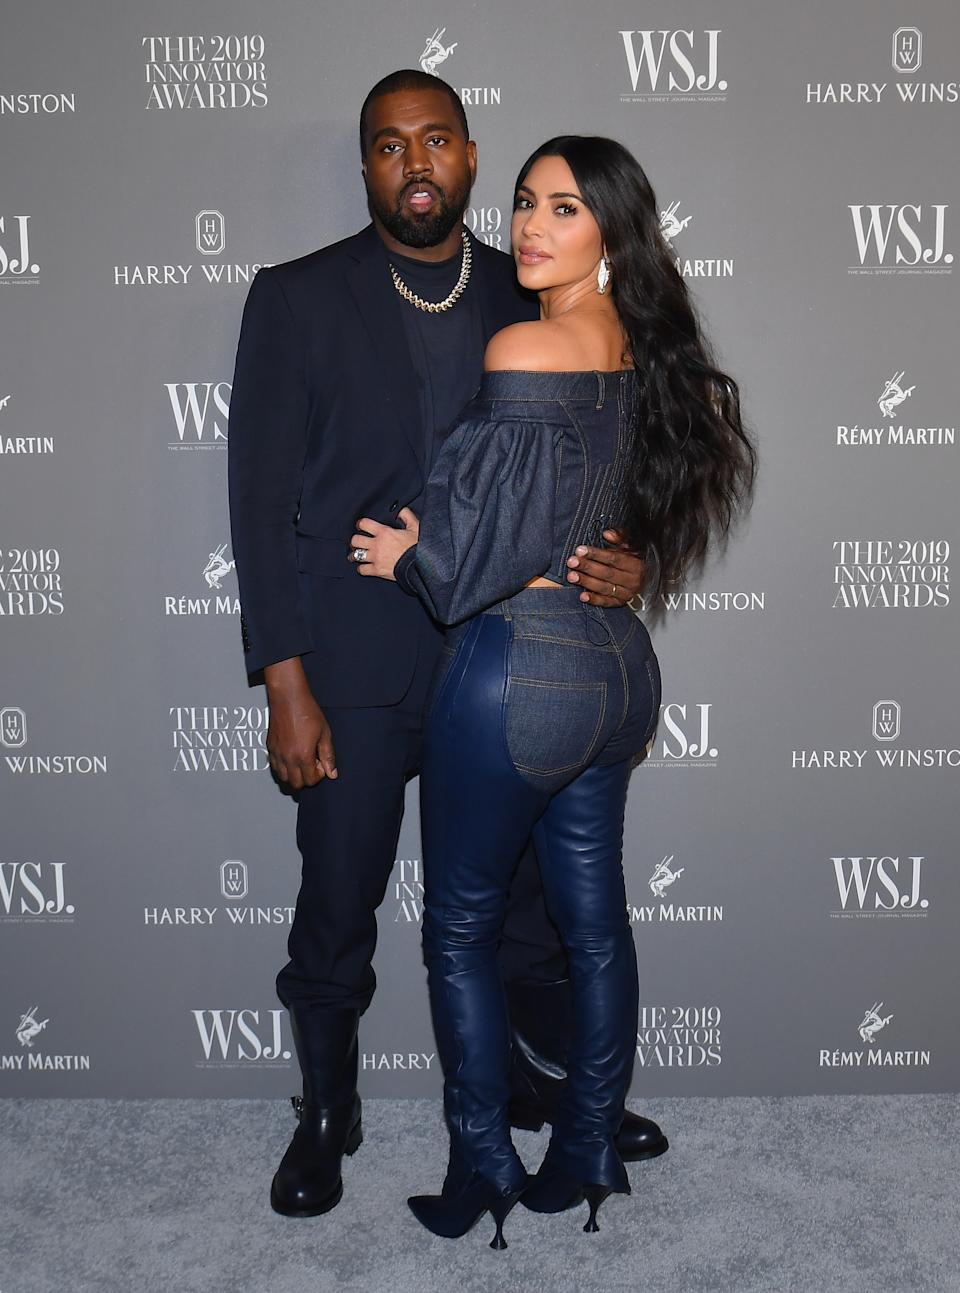 US media personality Kim Kardashian West (R) and husband US rapper Kanye West attend the WSJ Magazine 2019 Innovator Awards at MOMA on November 6, 2019 in New York City. (Photo by Angela Weiss / AFP) (Photo by ANGELA WEISS/AFP via Getty Images)